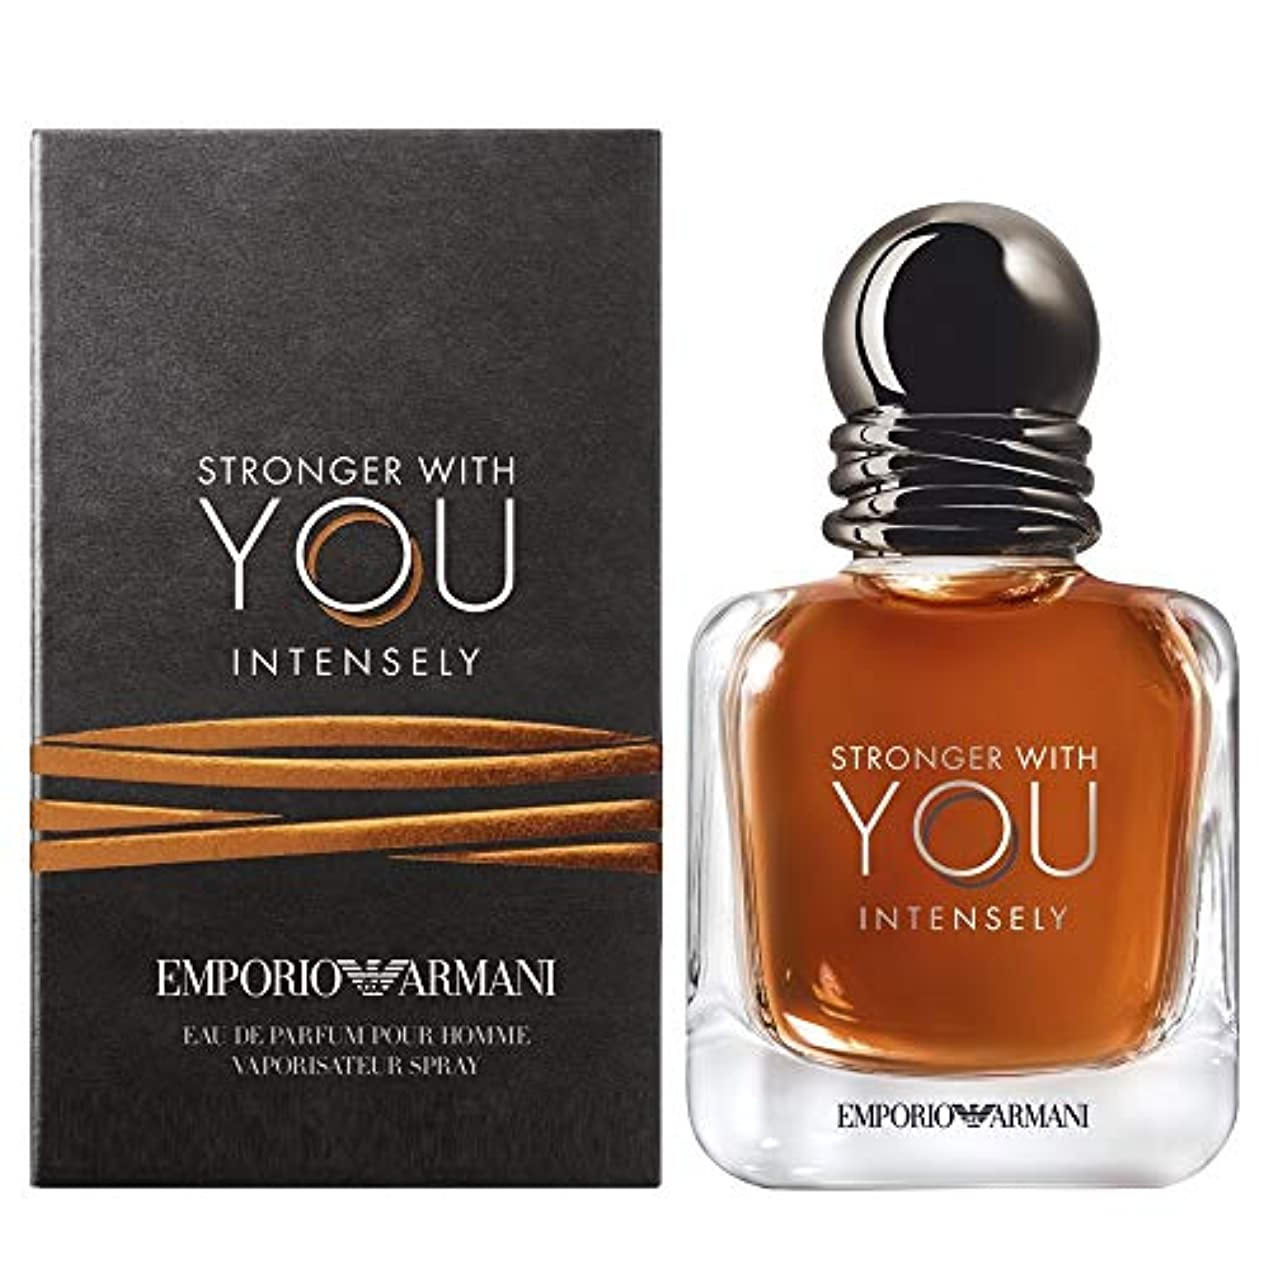 糞細菌おかしいジョルジオアルマーニ Emporio Armani Stronger With You Intensely Eau De Parfum Spray 100ml/3.4oz並行輸入品